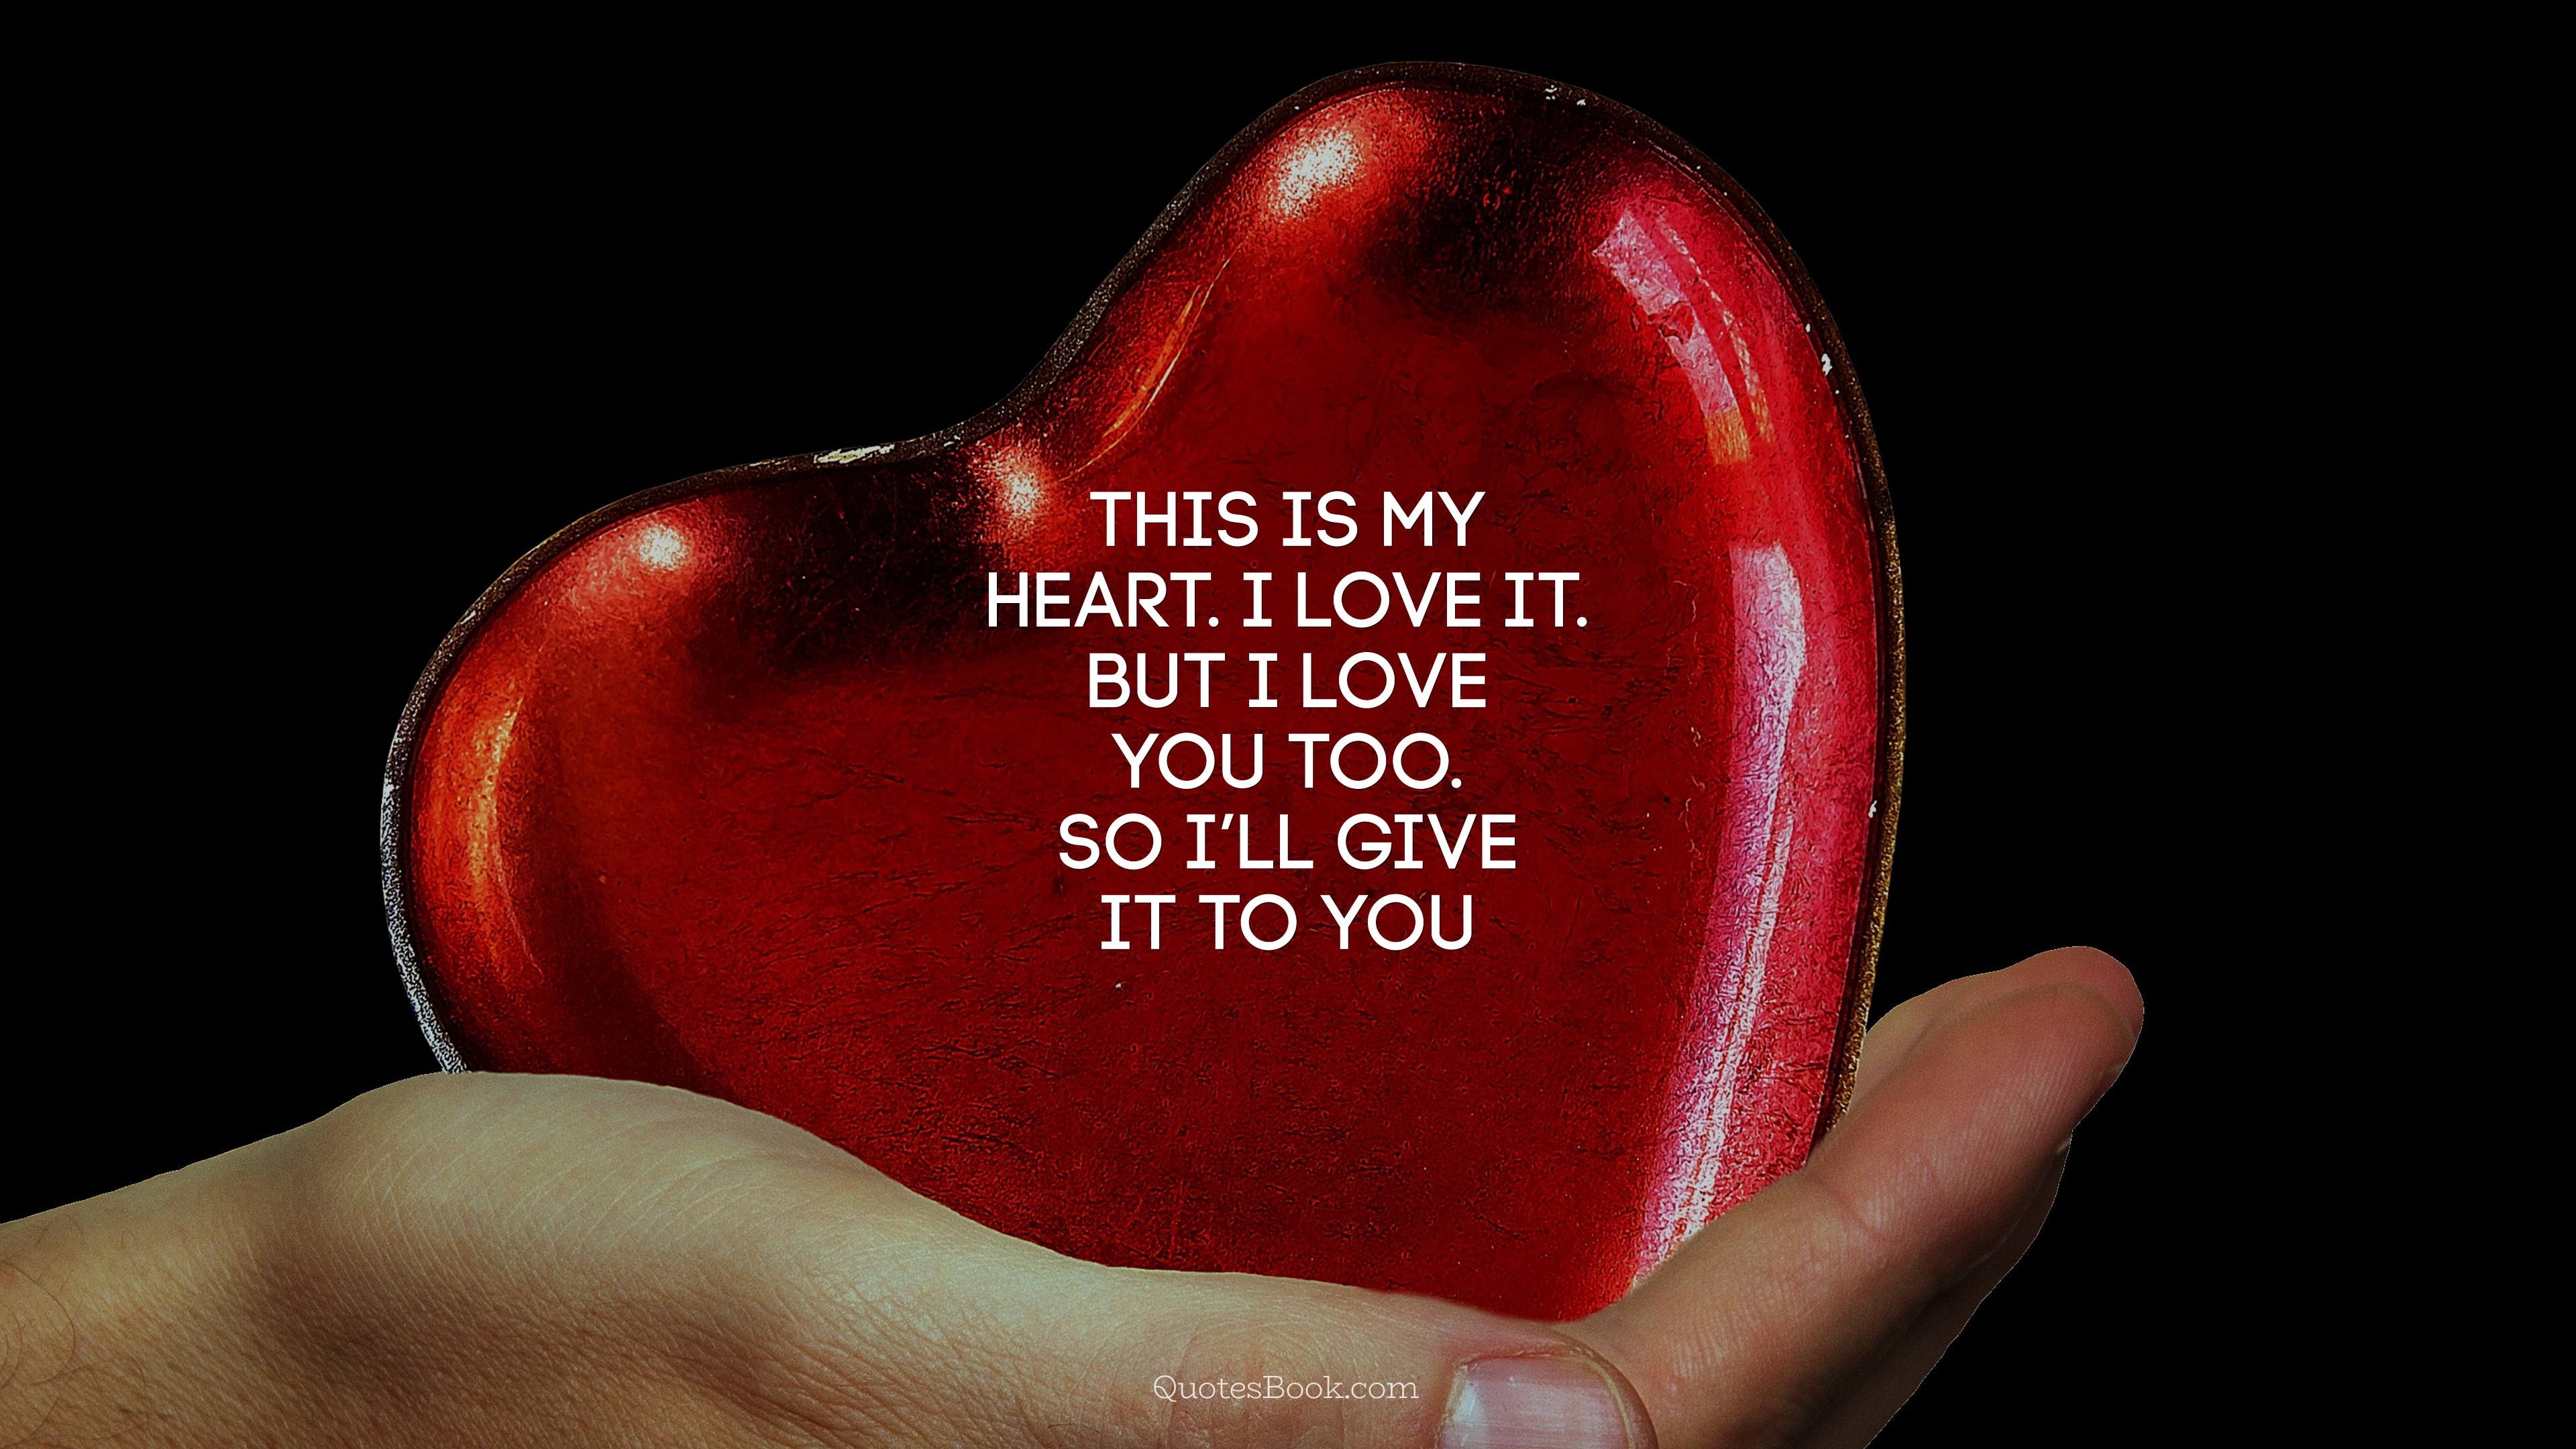 This Is My Heart I Love It But I Love You Too So Ill Give It To